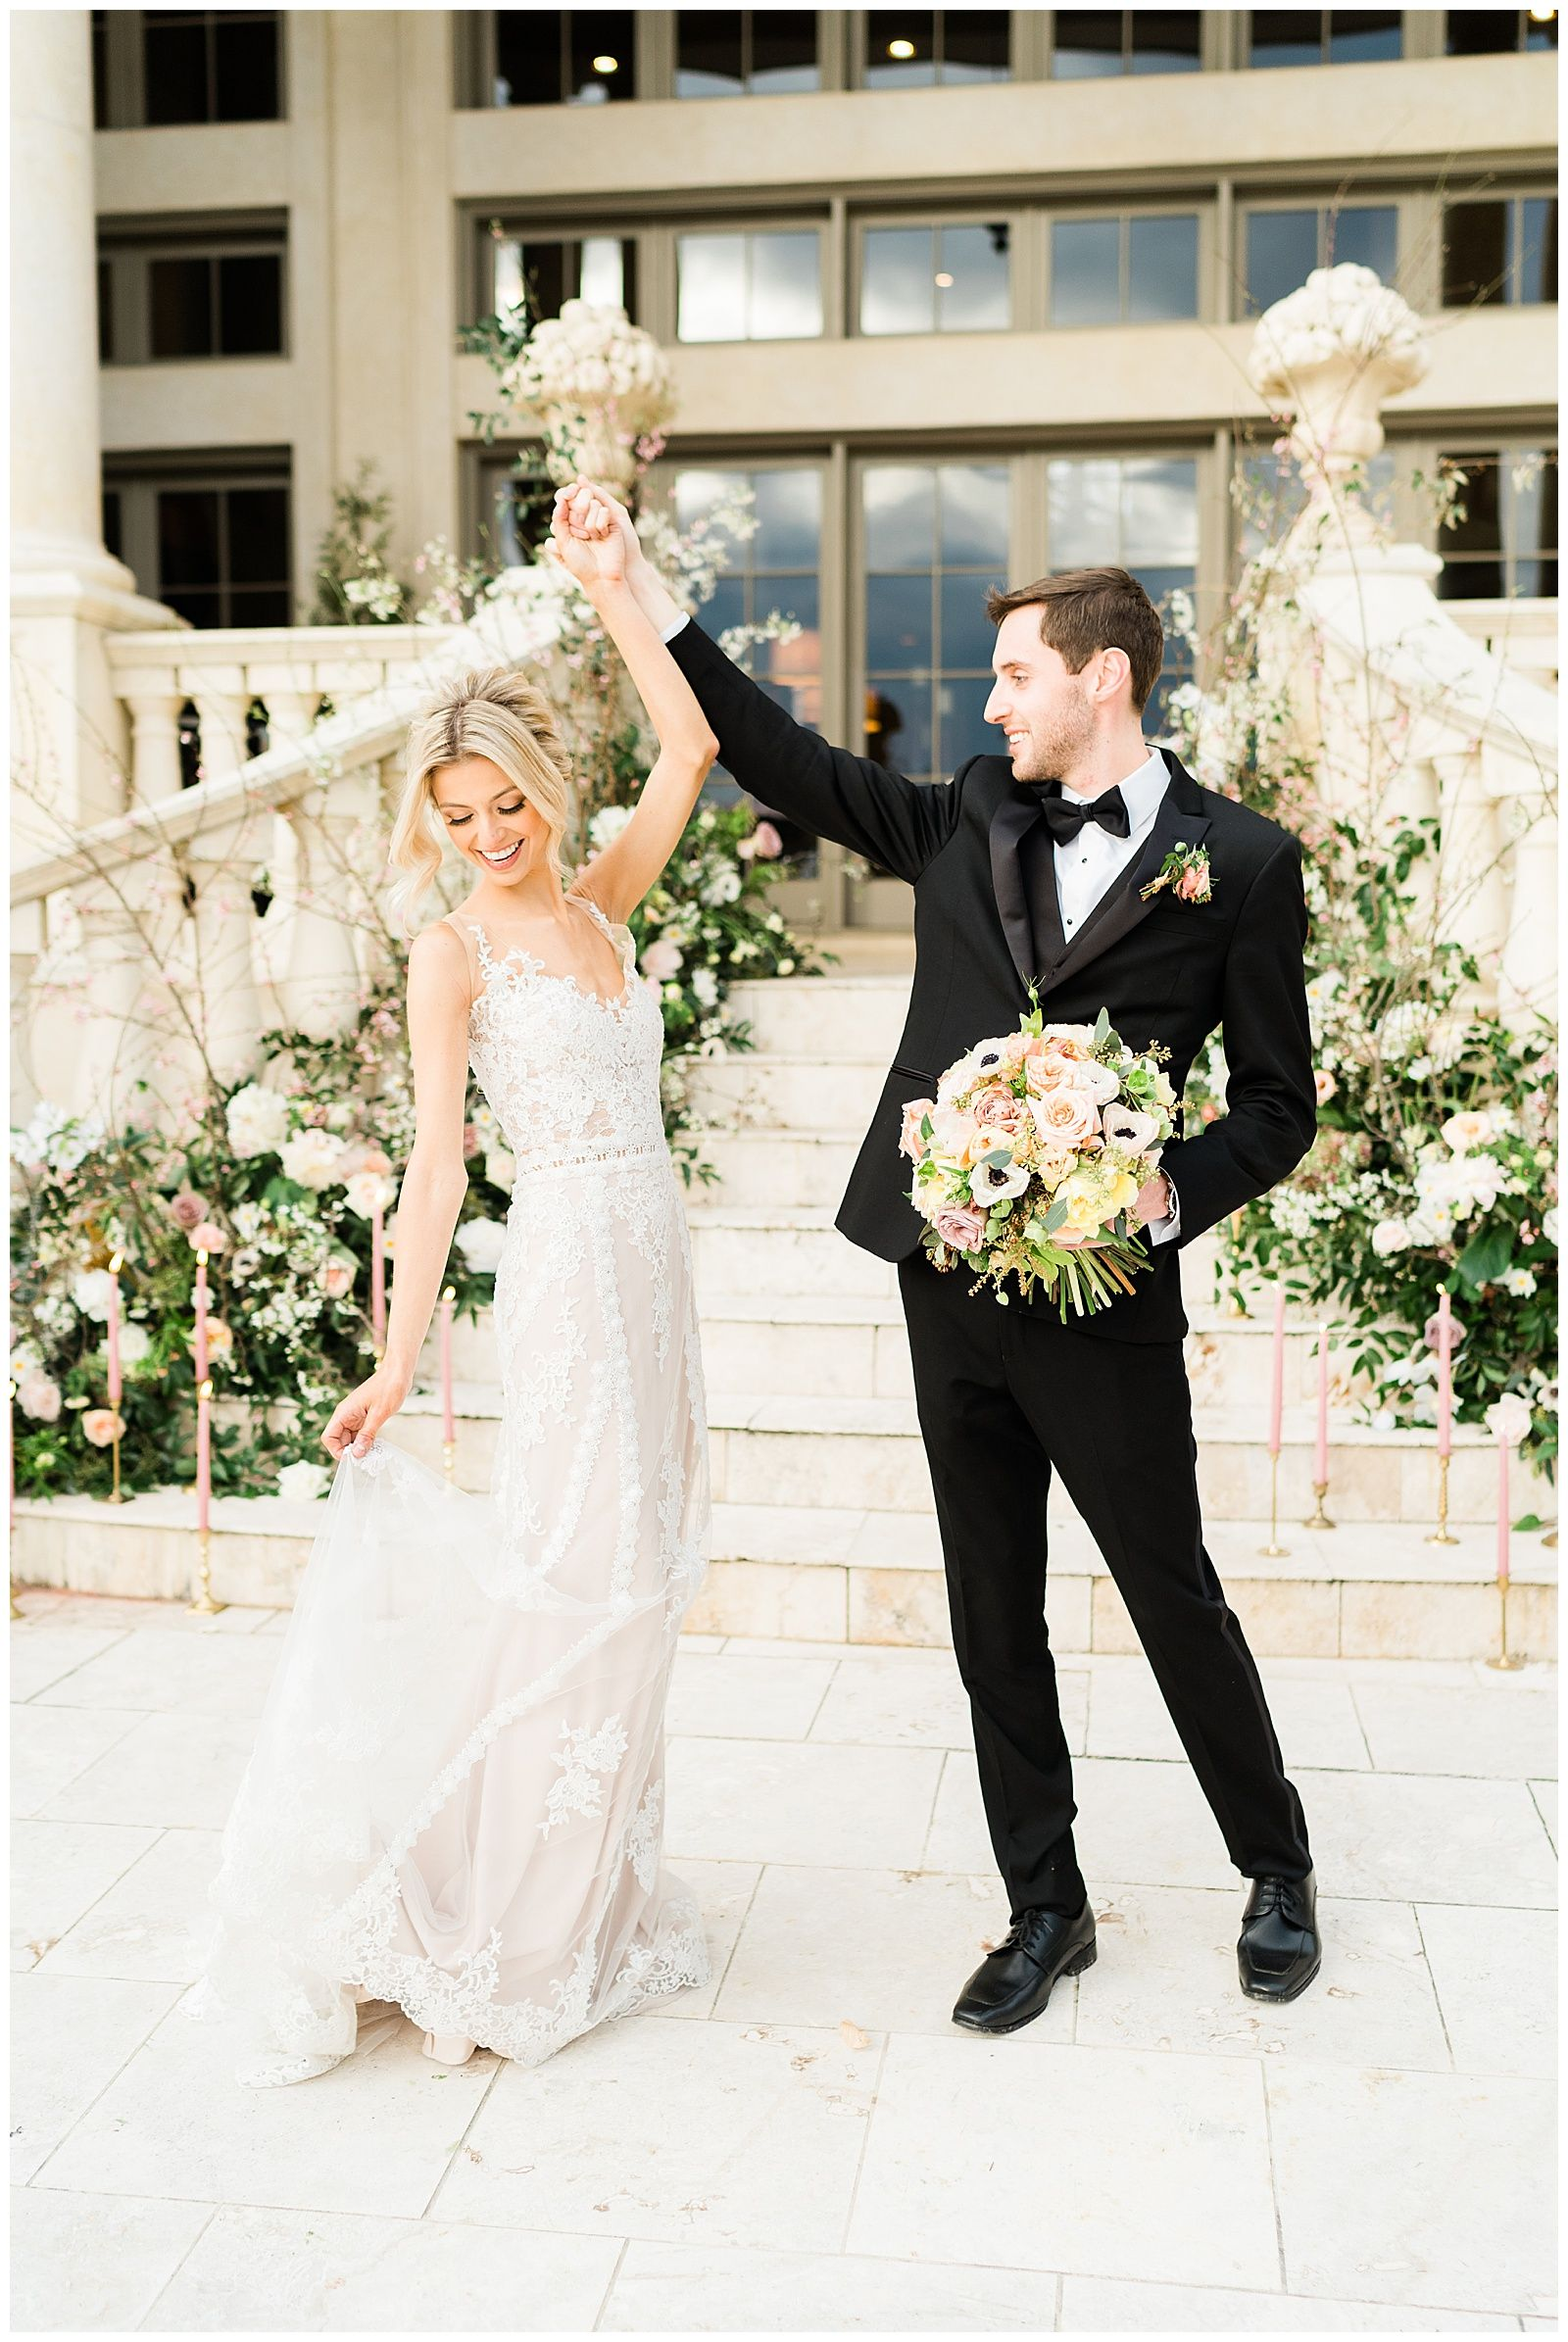 European Style Wedding Grand Staircase Lace Wedding Dress Wedding European Fashion Wedding Dresses Lace